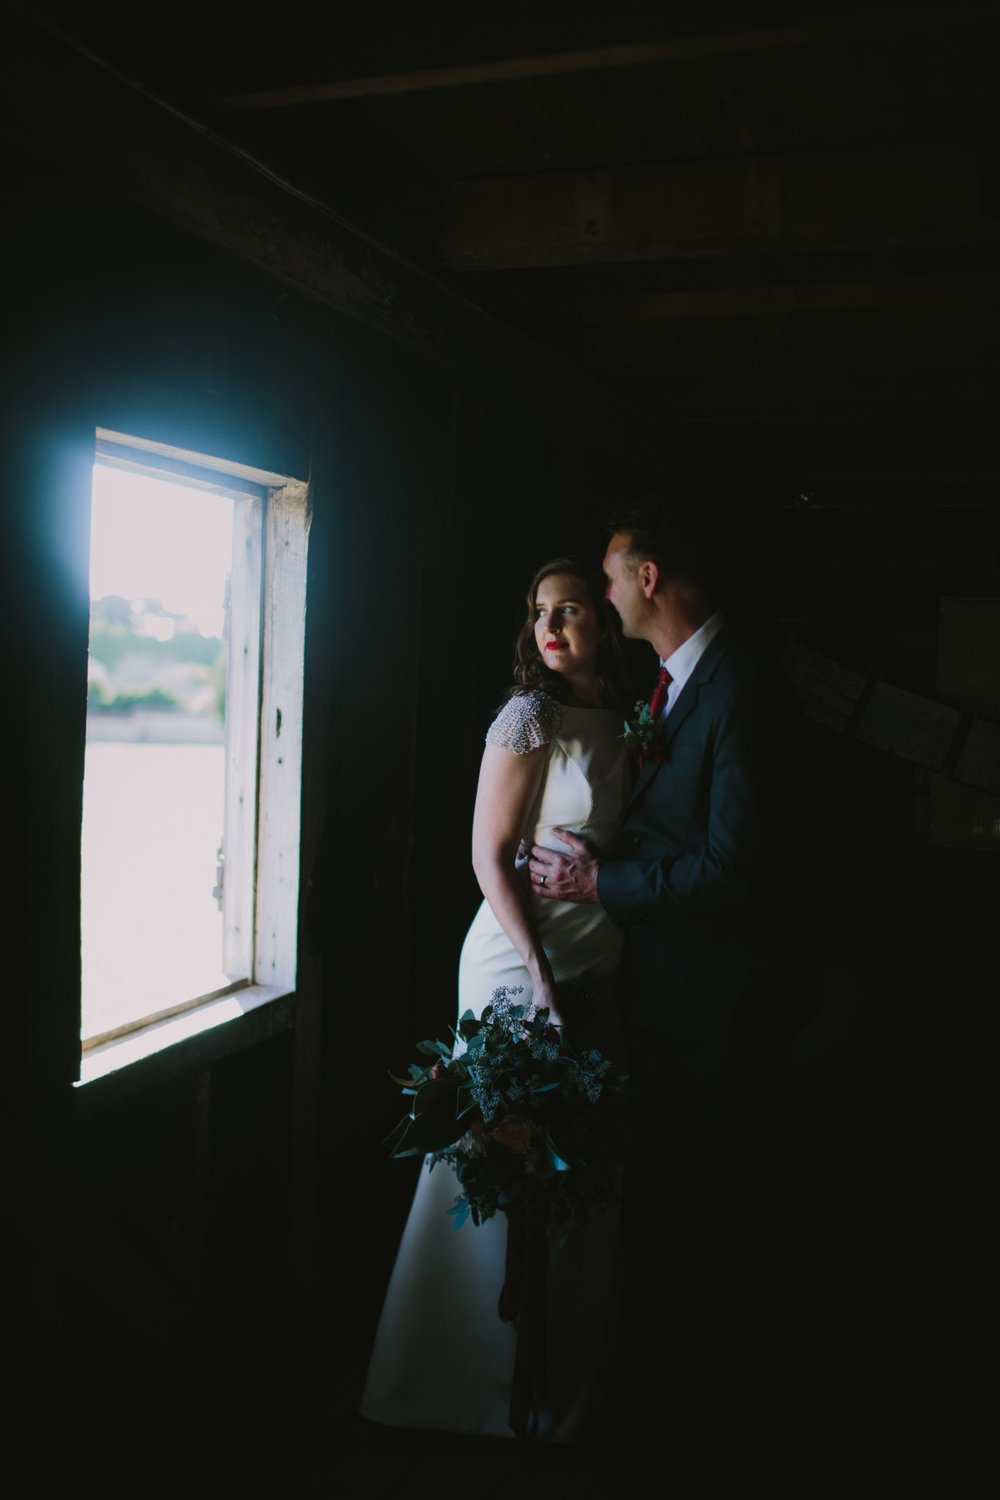 I-Got-You-Babe-Weddings-Launceston-Tasmania-Melinda-Brendan072.jpg